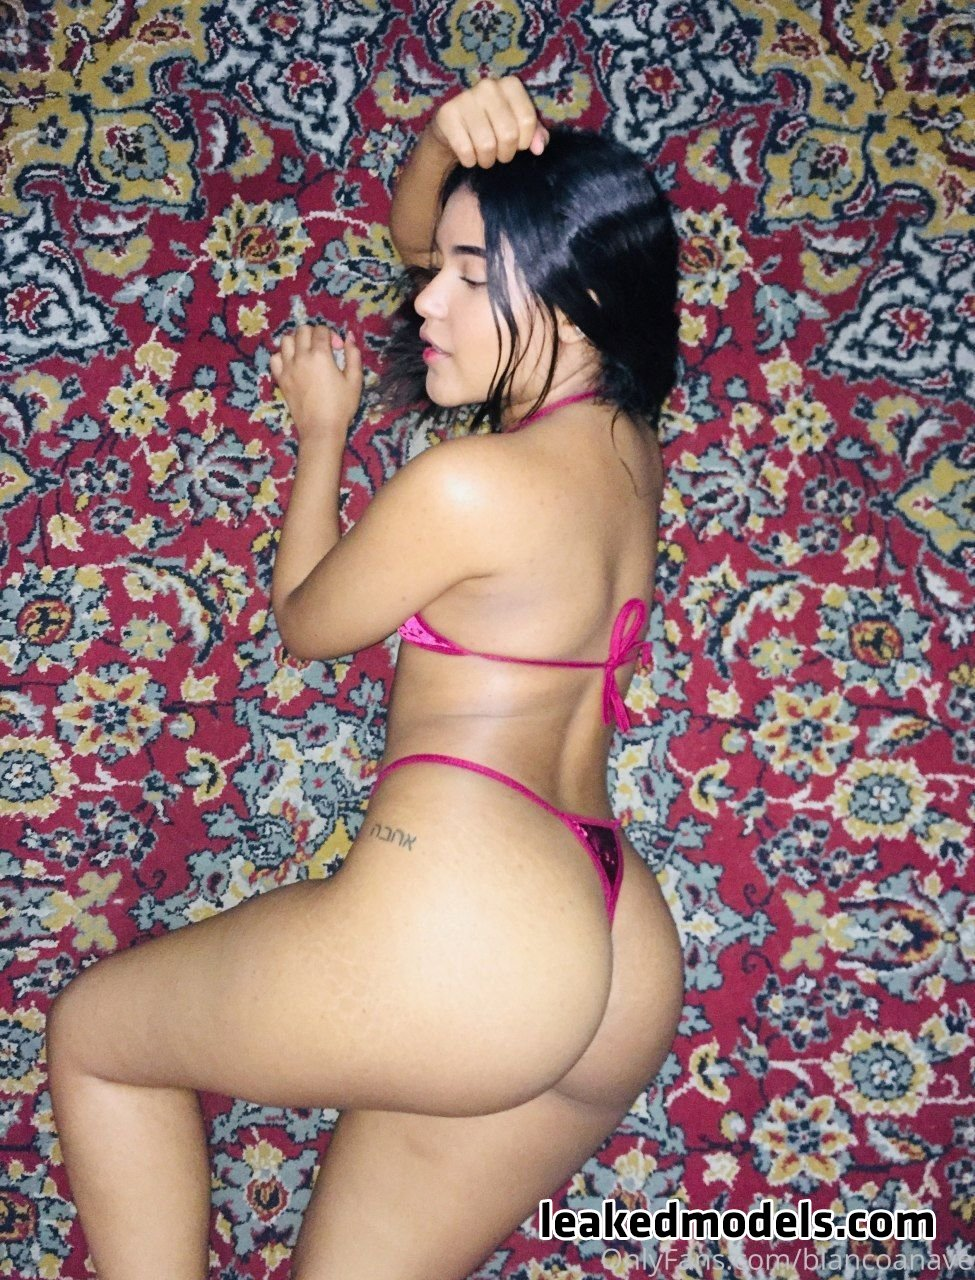 Ana Blanco – blancoanave OnlyFans Nude Leaks (31 Photos)